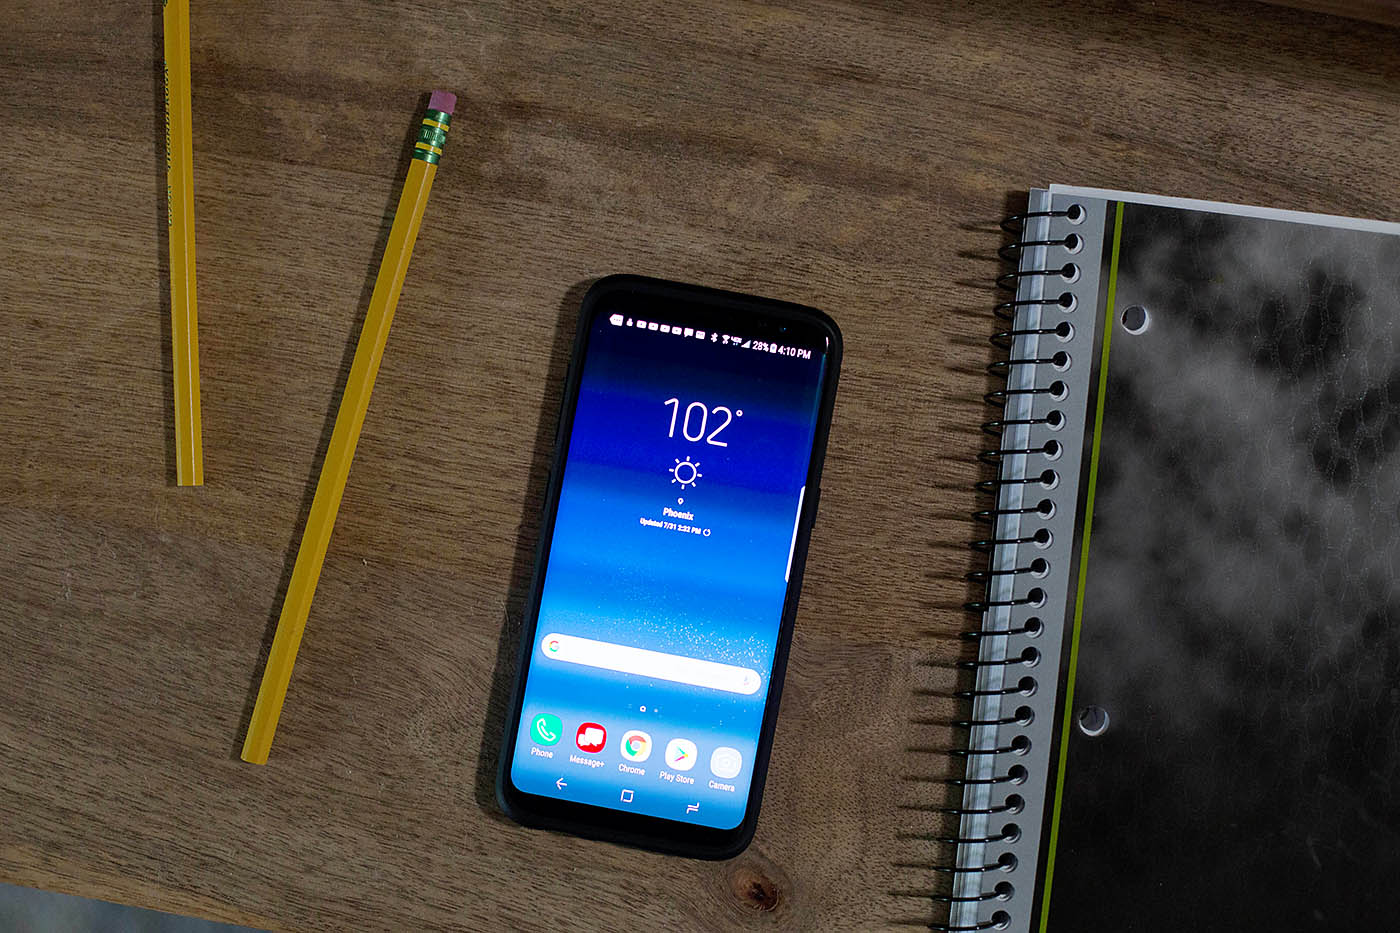 Tips for taking better back-to-school photos and paperwork organization with the Samsung Galaxy S8